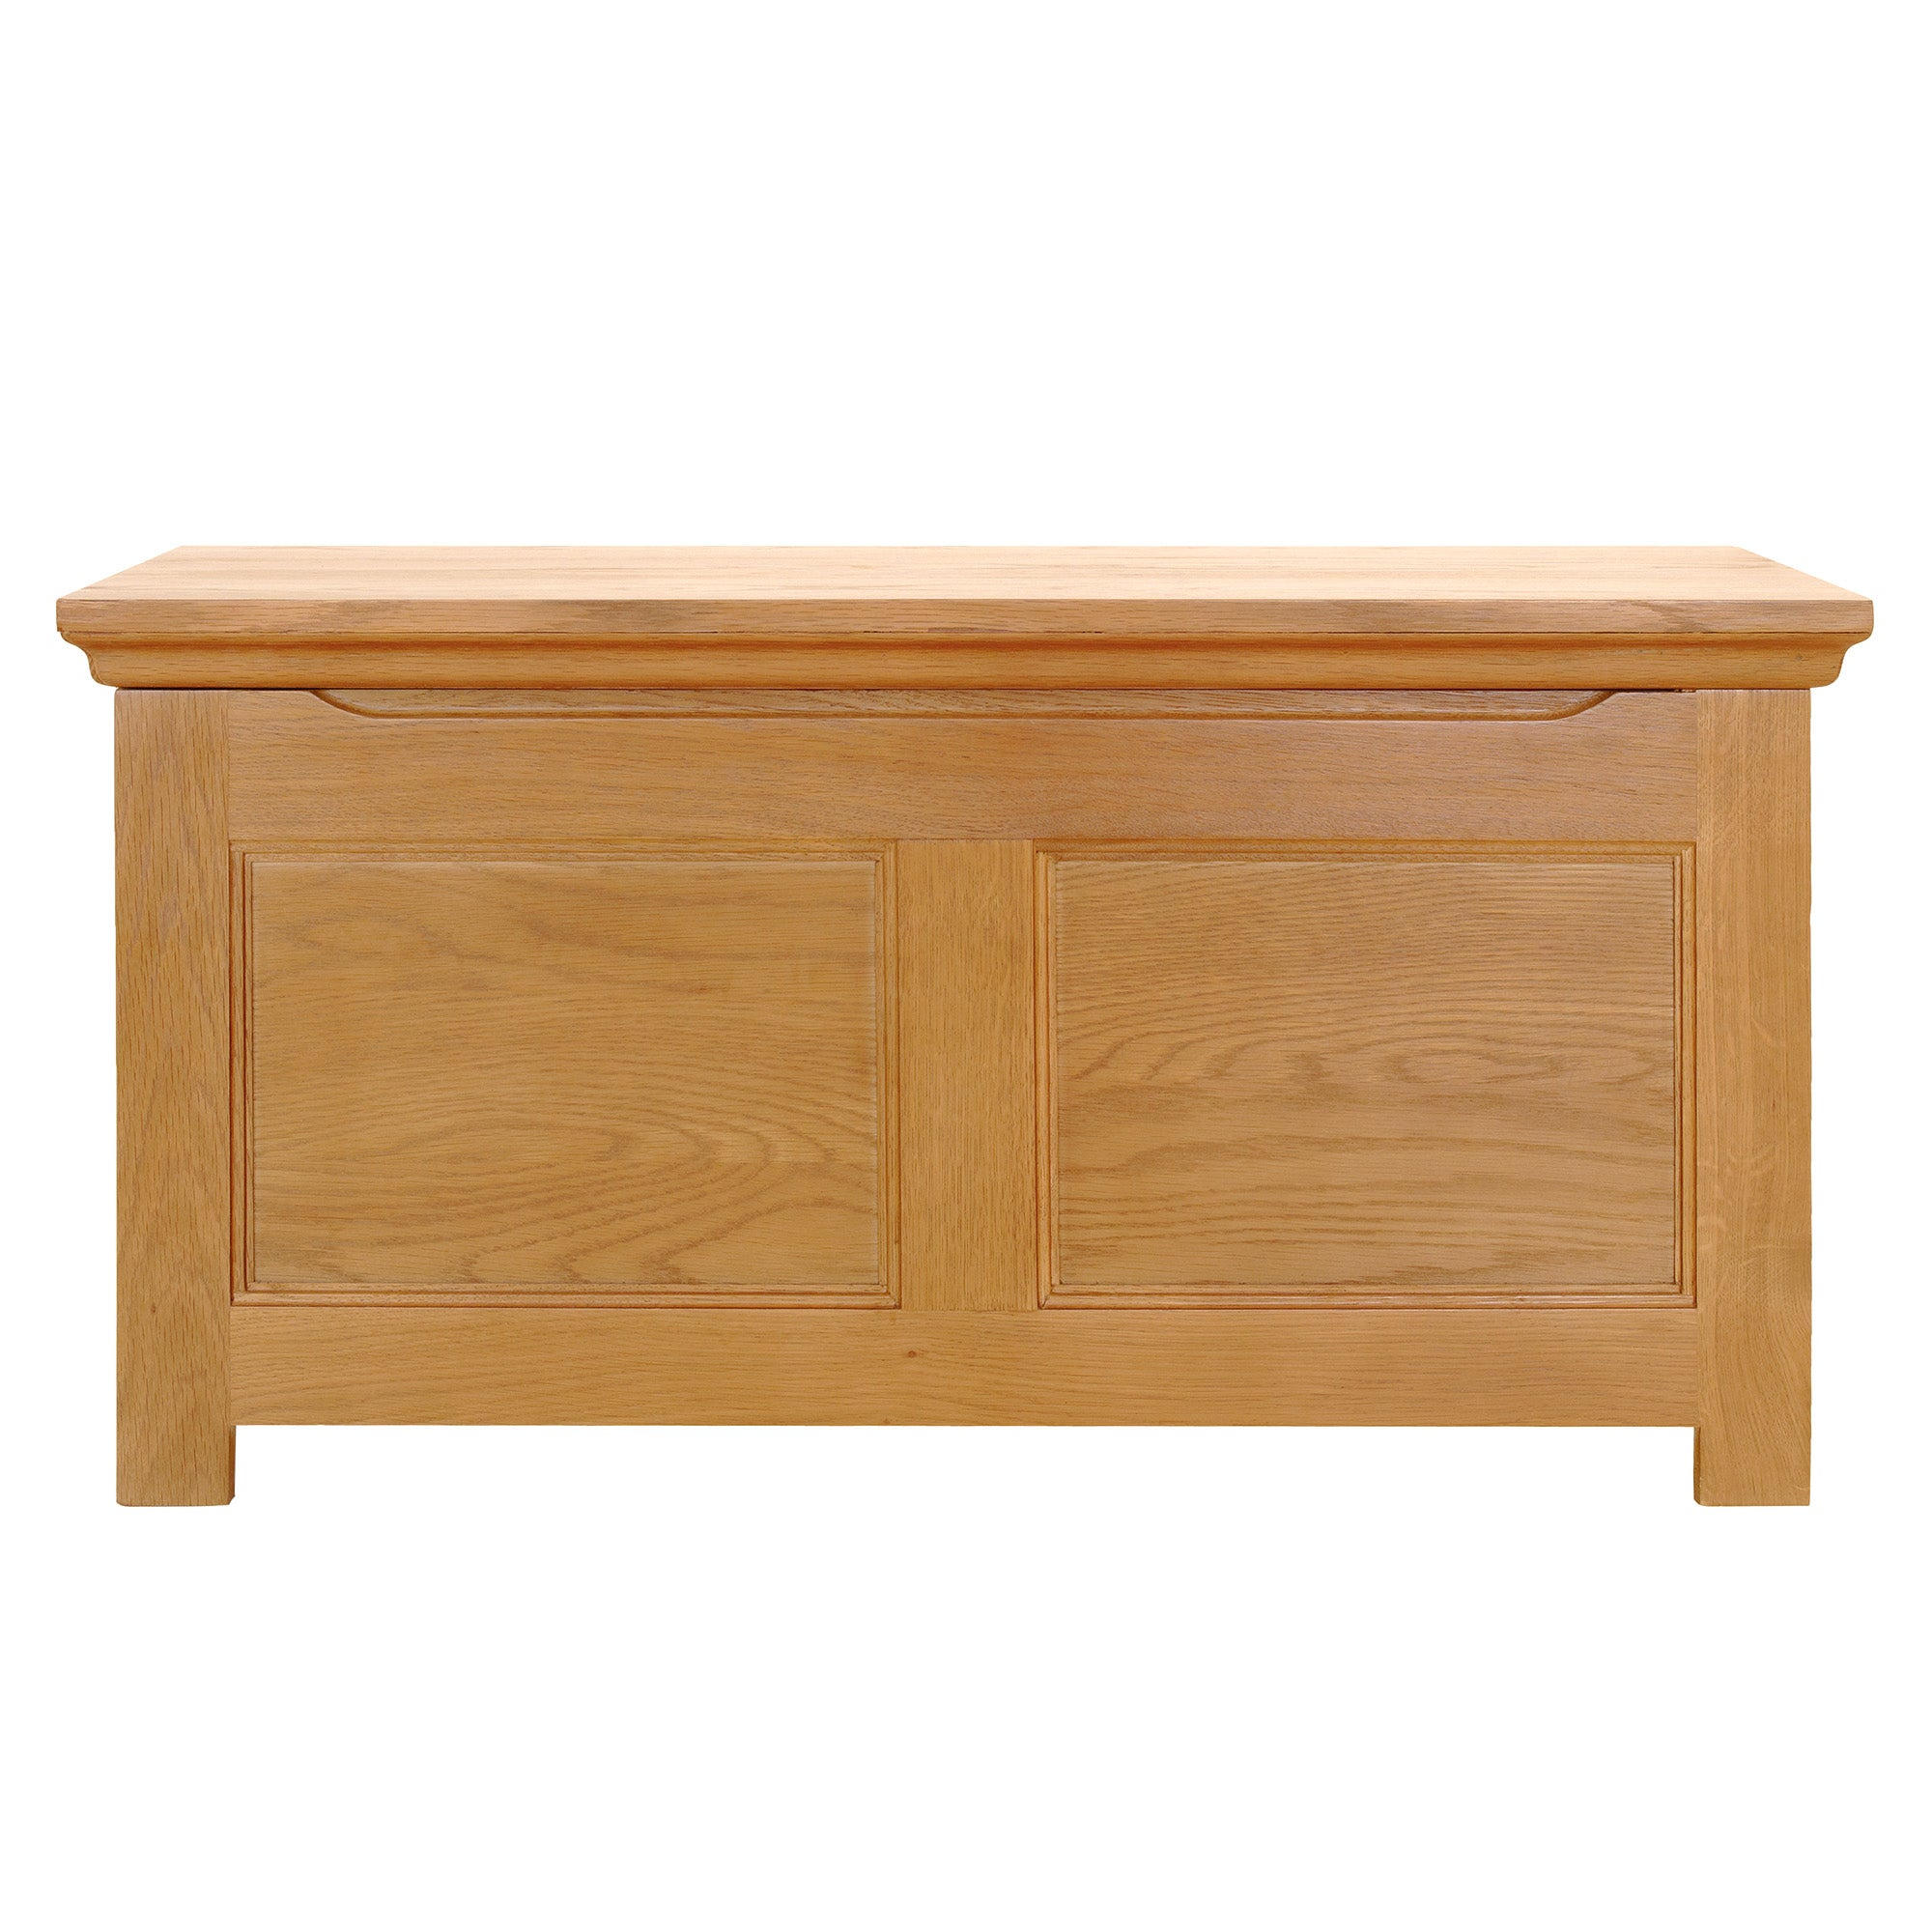 Photo of Dorchester oak blanket box light brown